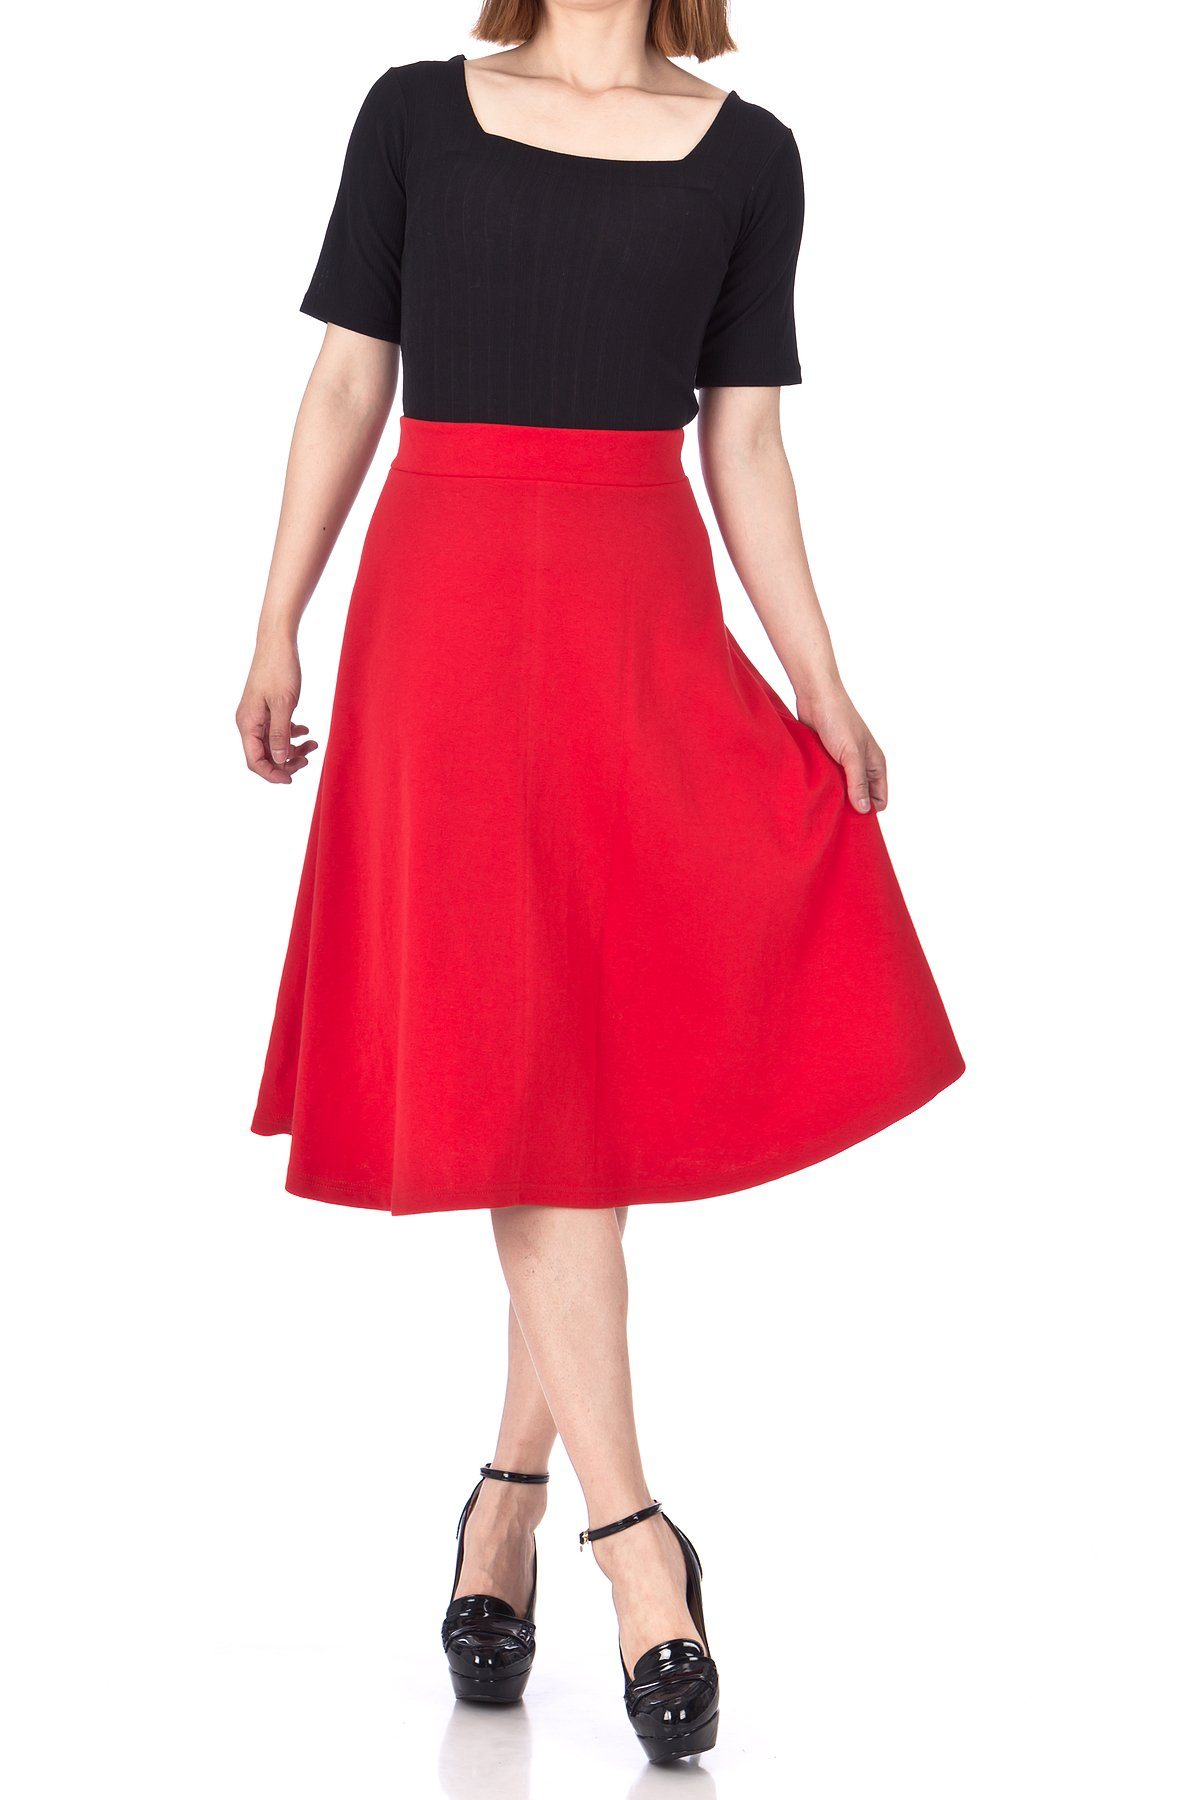 Everyday High Waist A Line Flared Skater Midi Skirt Red 03